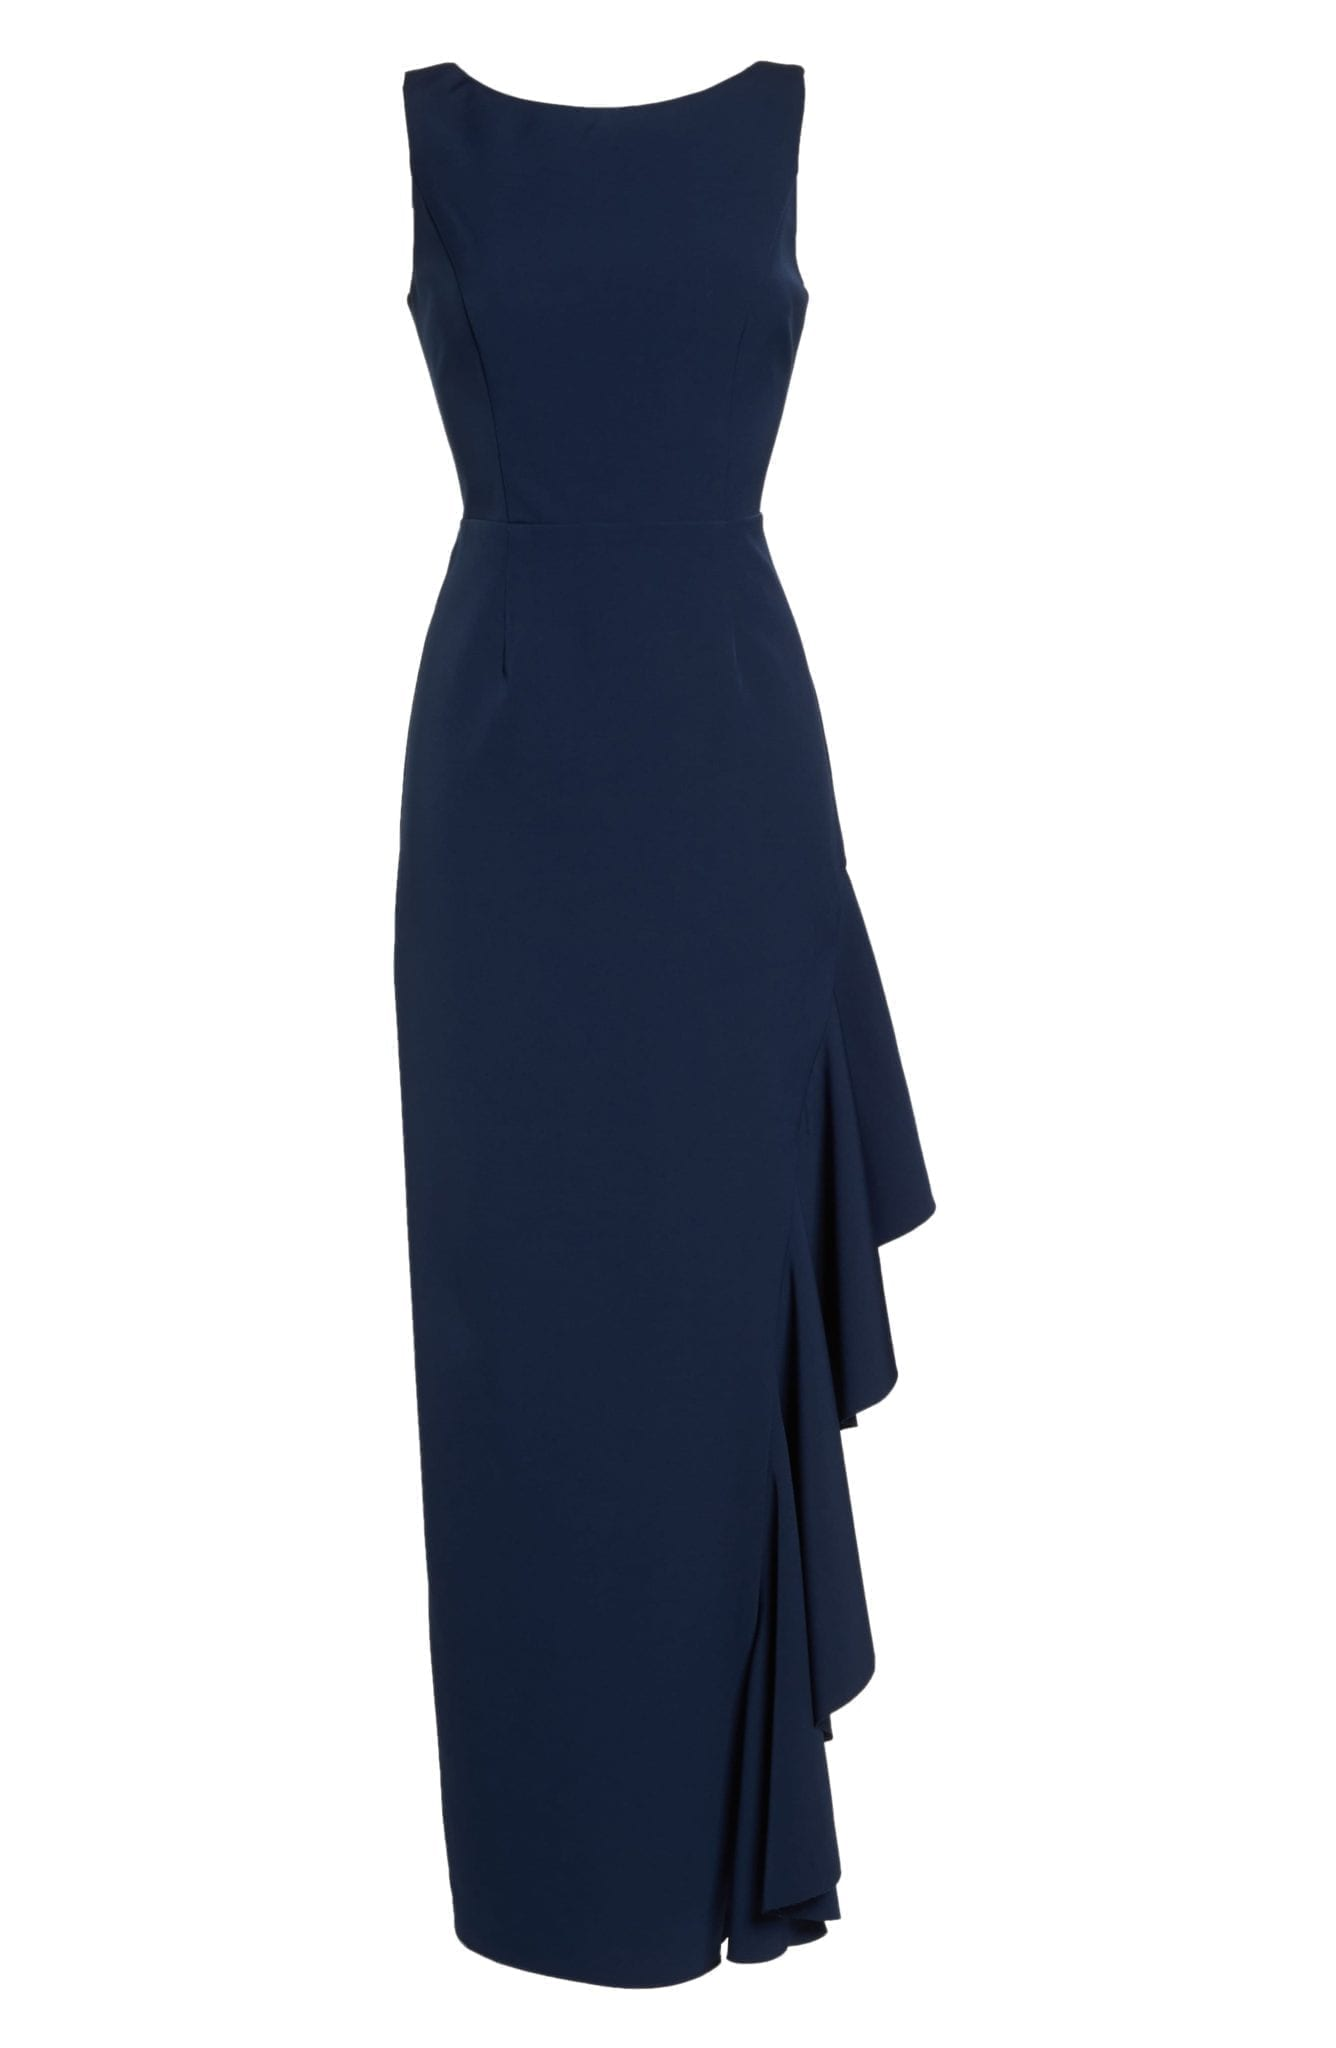 VINCE CAMUTO Ruffle Navy Gown - We Select Dresses